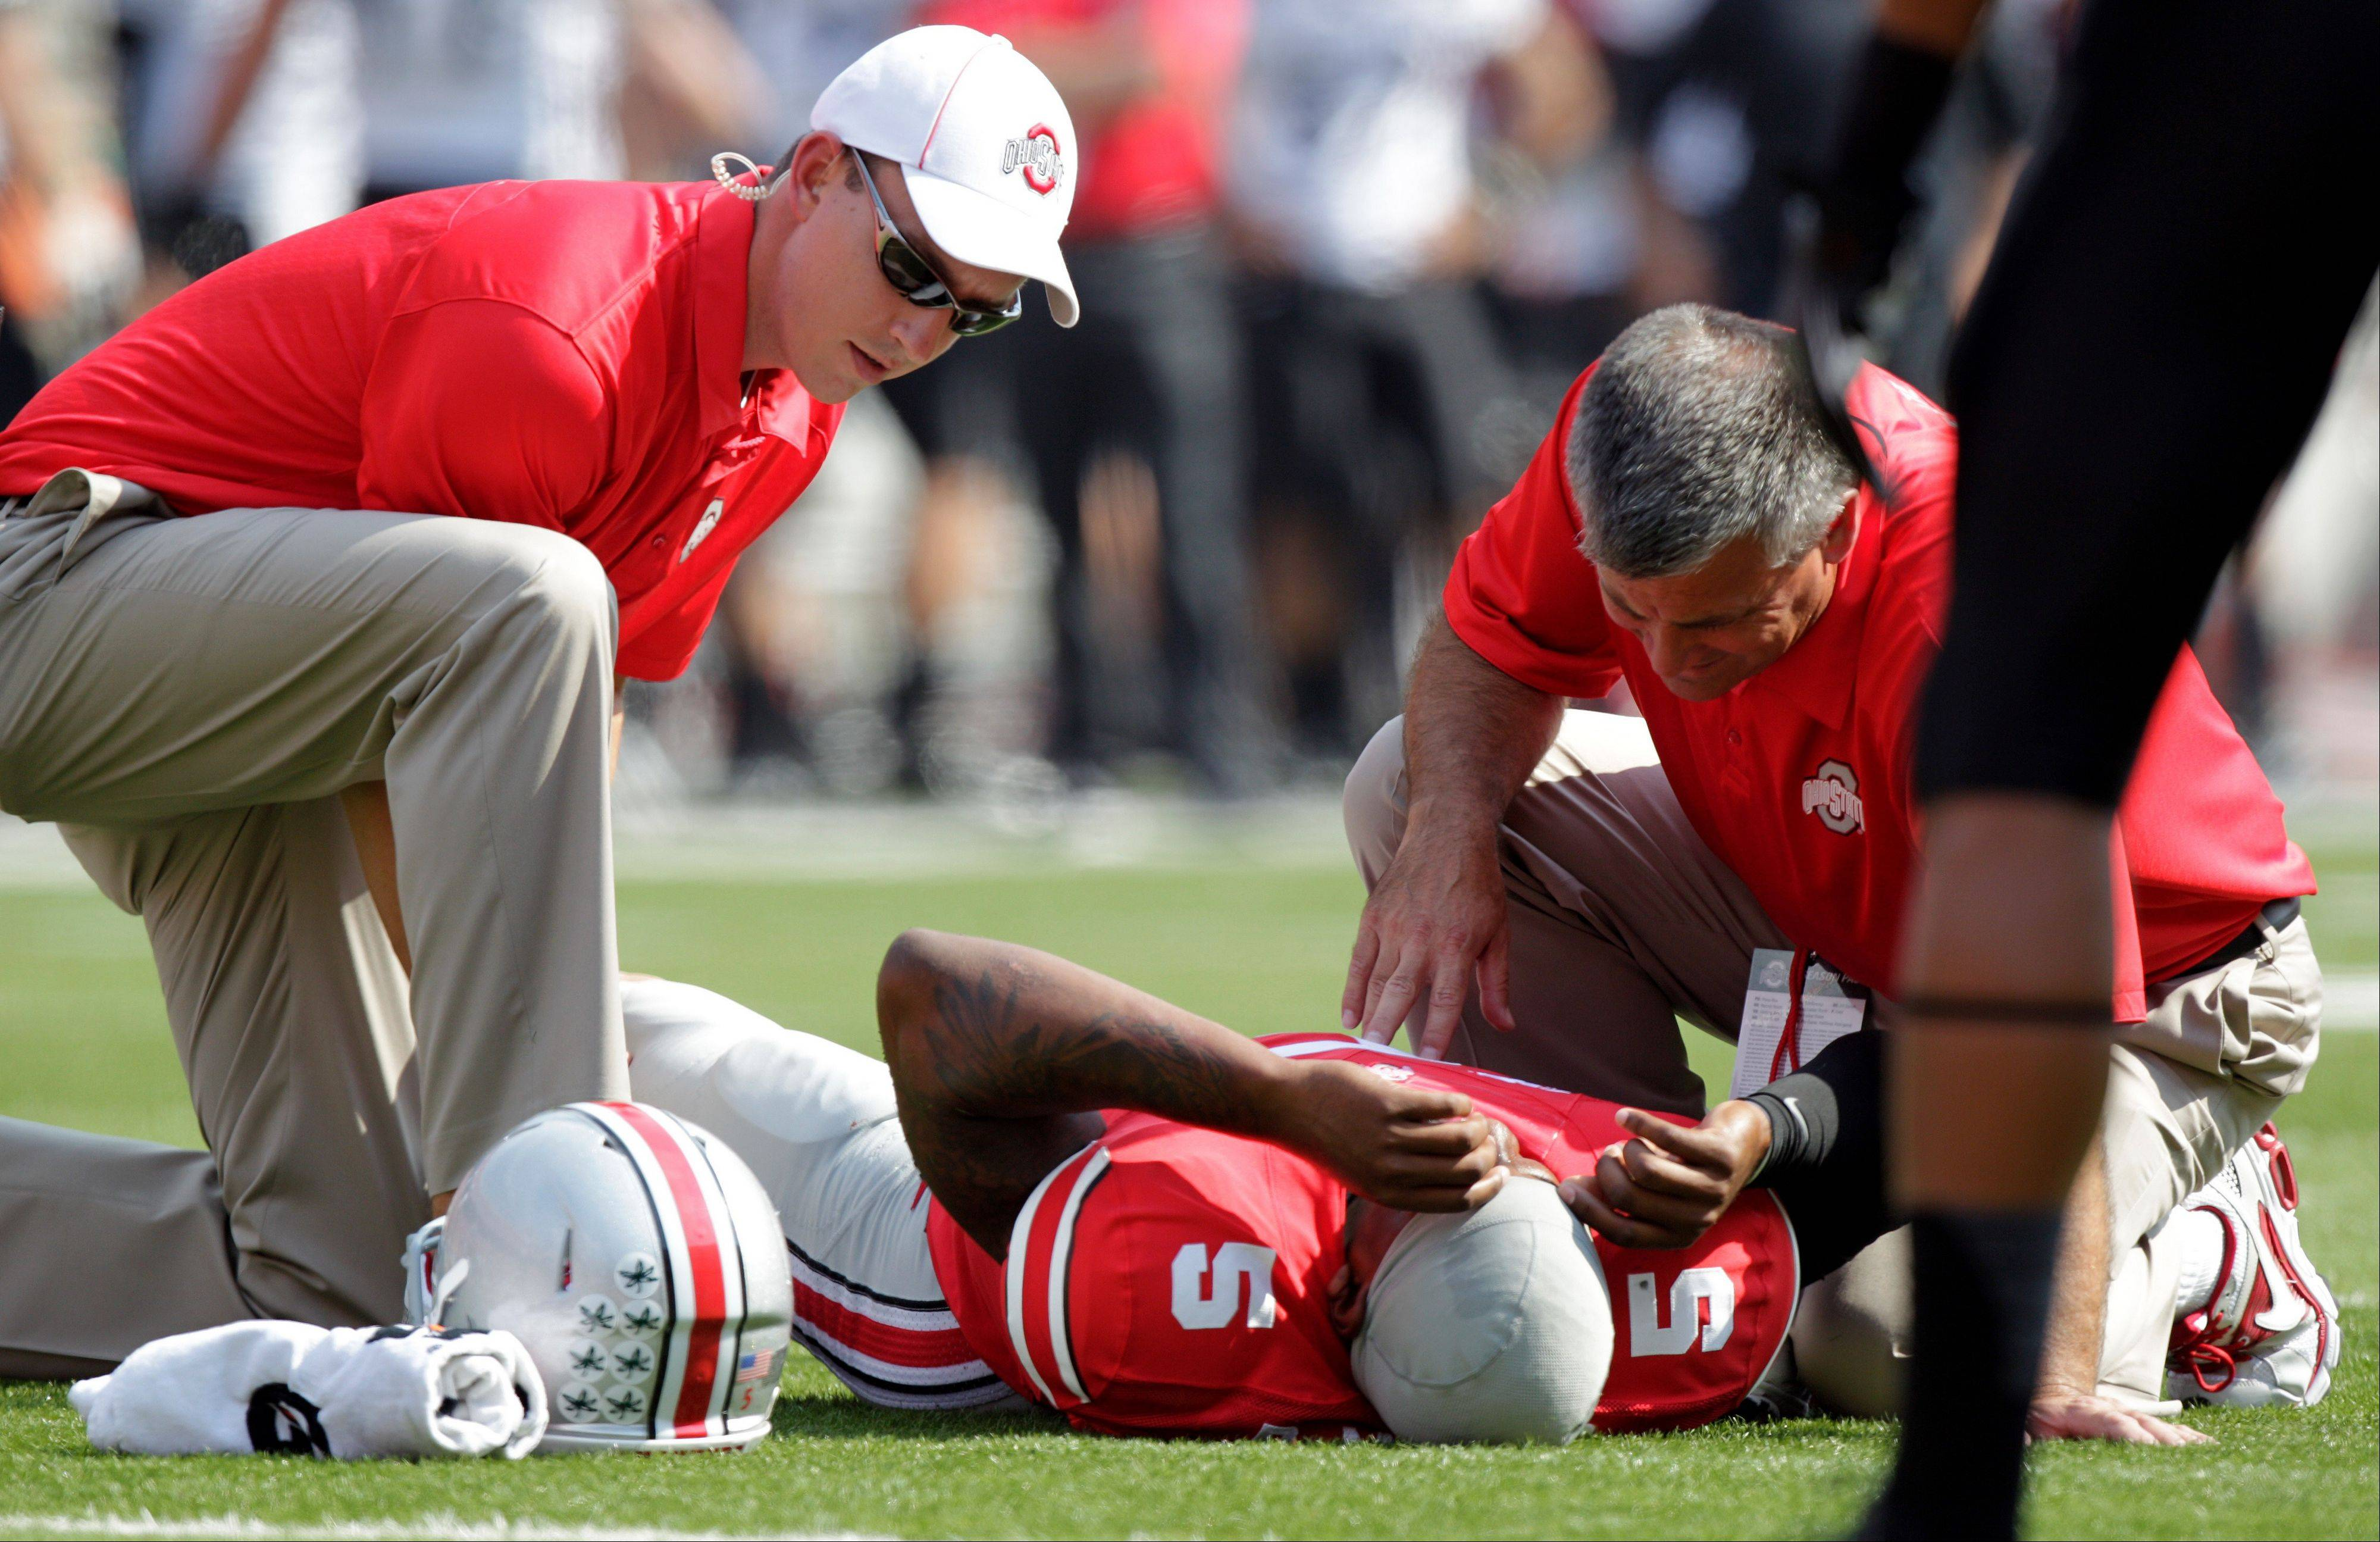 Ohio State trainers tend to quarterback Braxton Miller after he was injured during Saturday's home game against San Diego State.